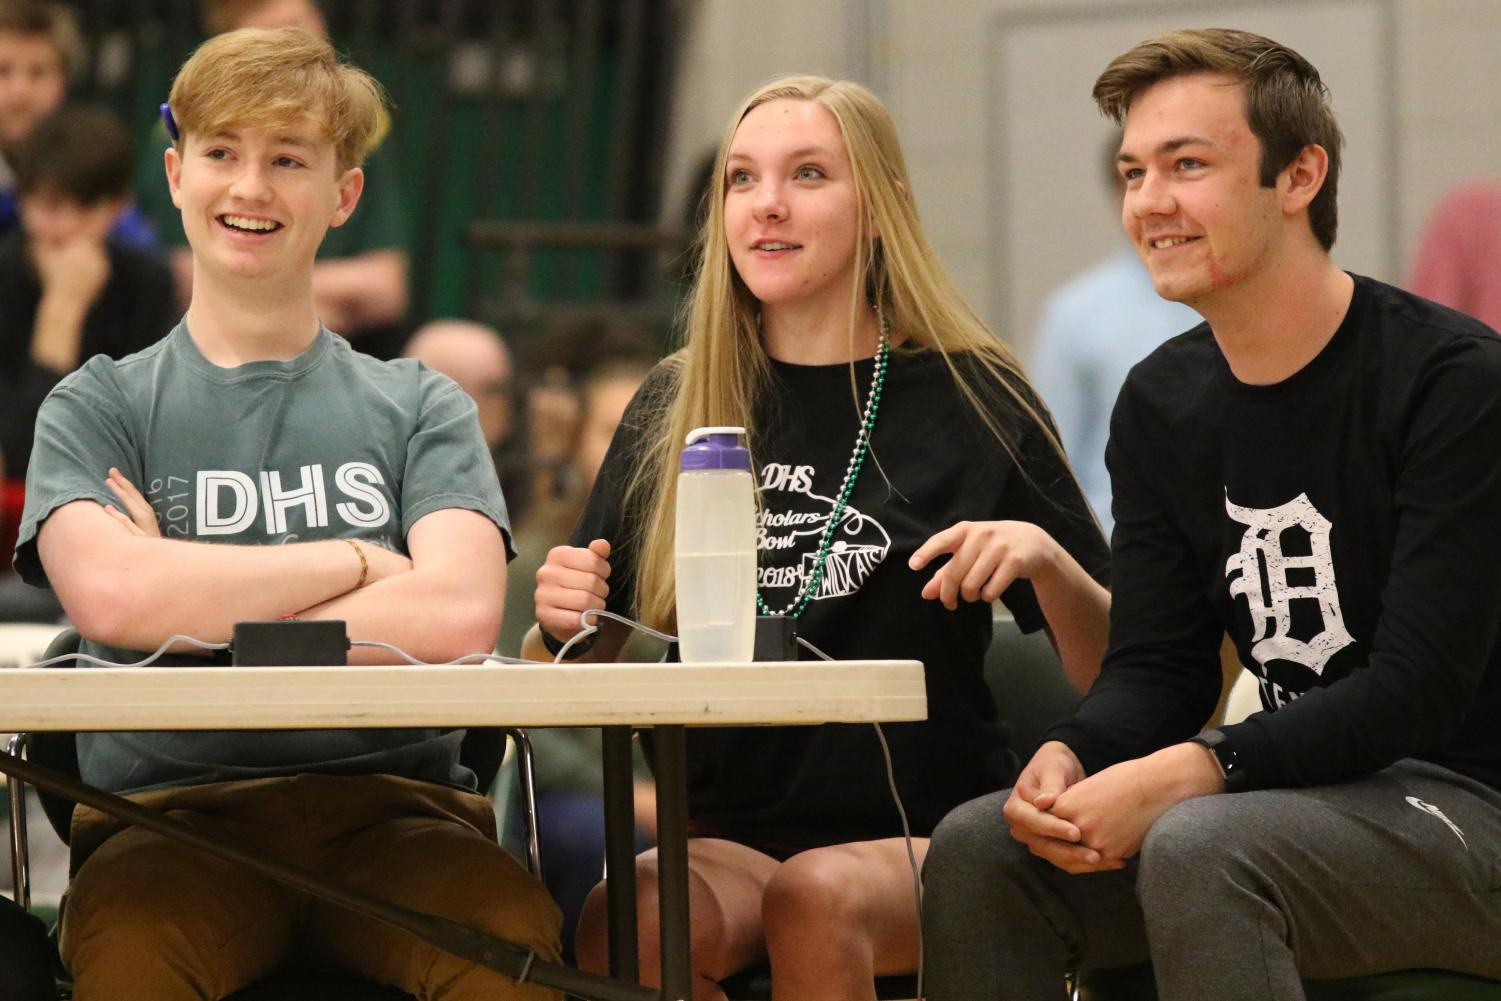 Scholars+Bowl+members%2C+seniors+Zach+Yarbrough+and+Abigal+Stutzman+and+junior+Cody+Murphy%2C+participate+in+a+game+against+teachers+in+honor+of+winning+State+earlier+this+year.